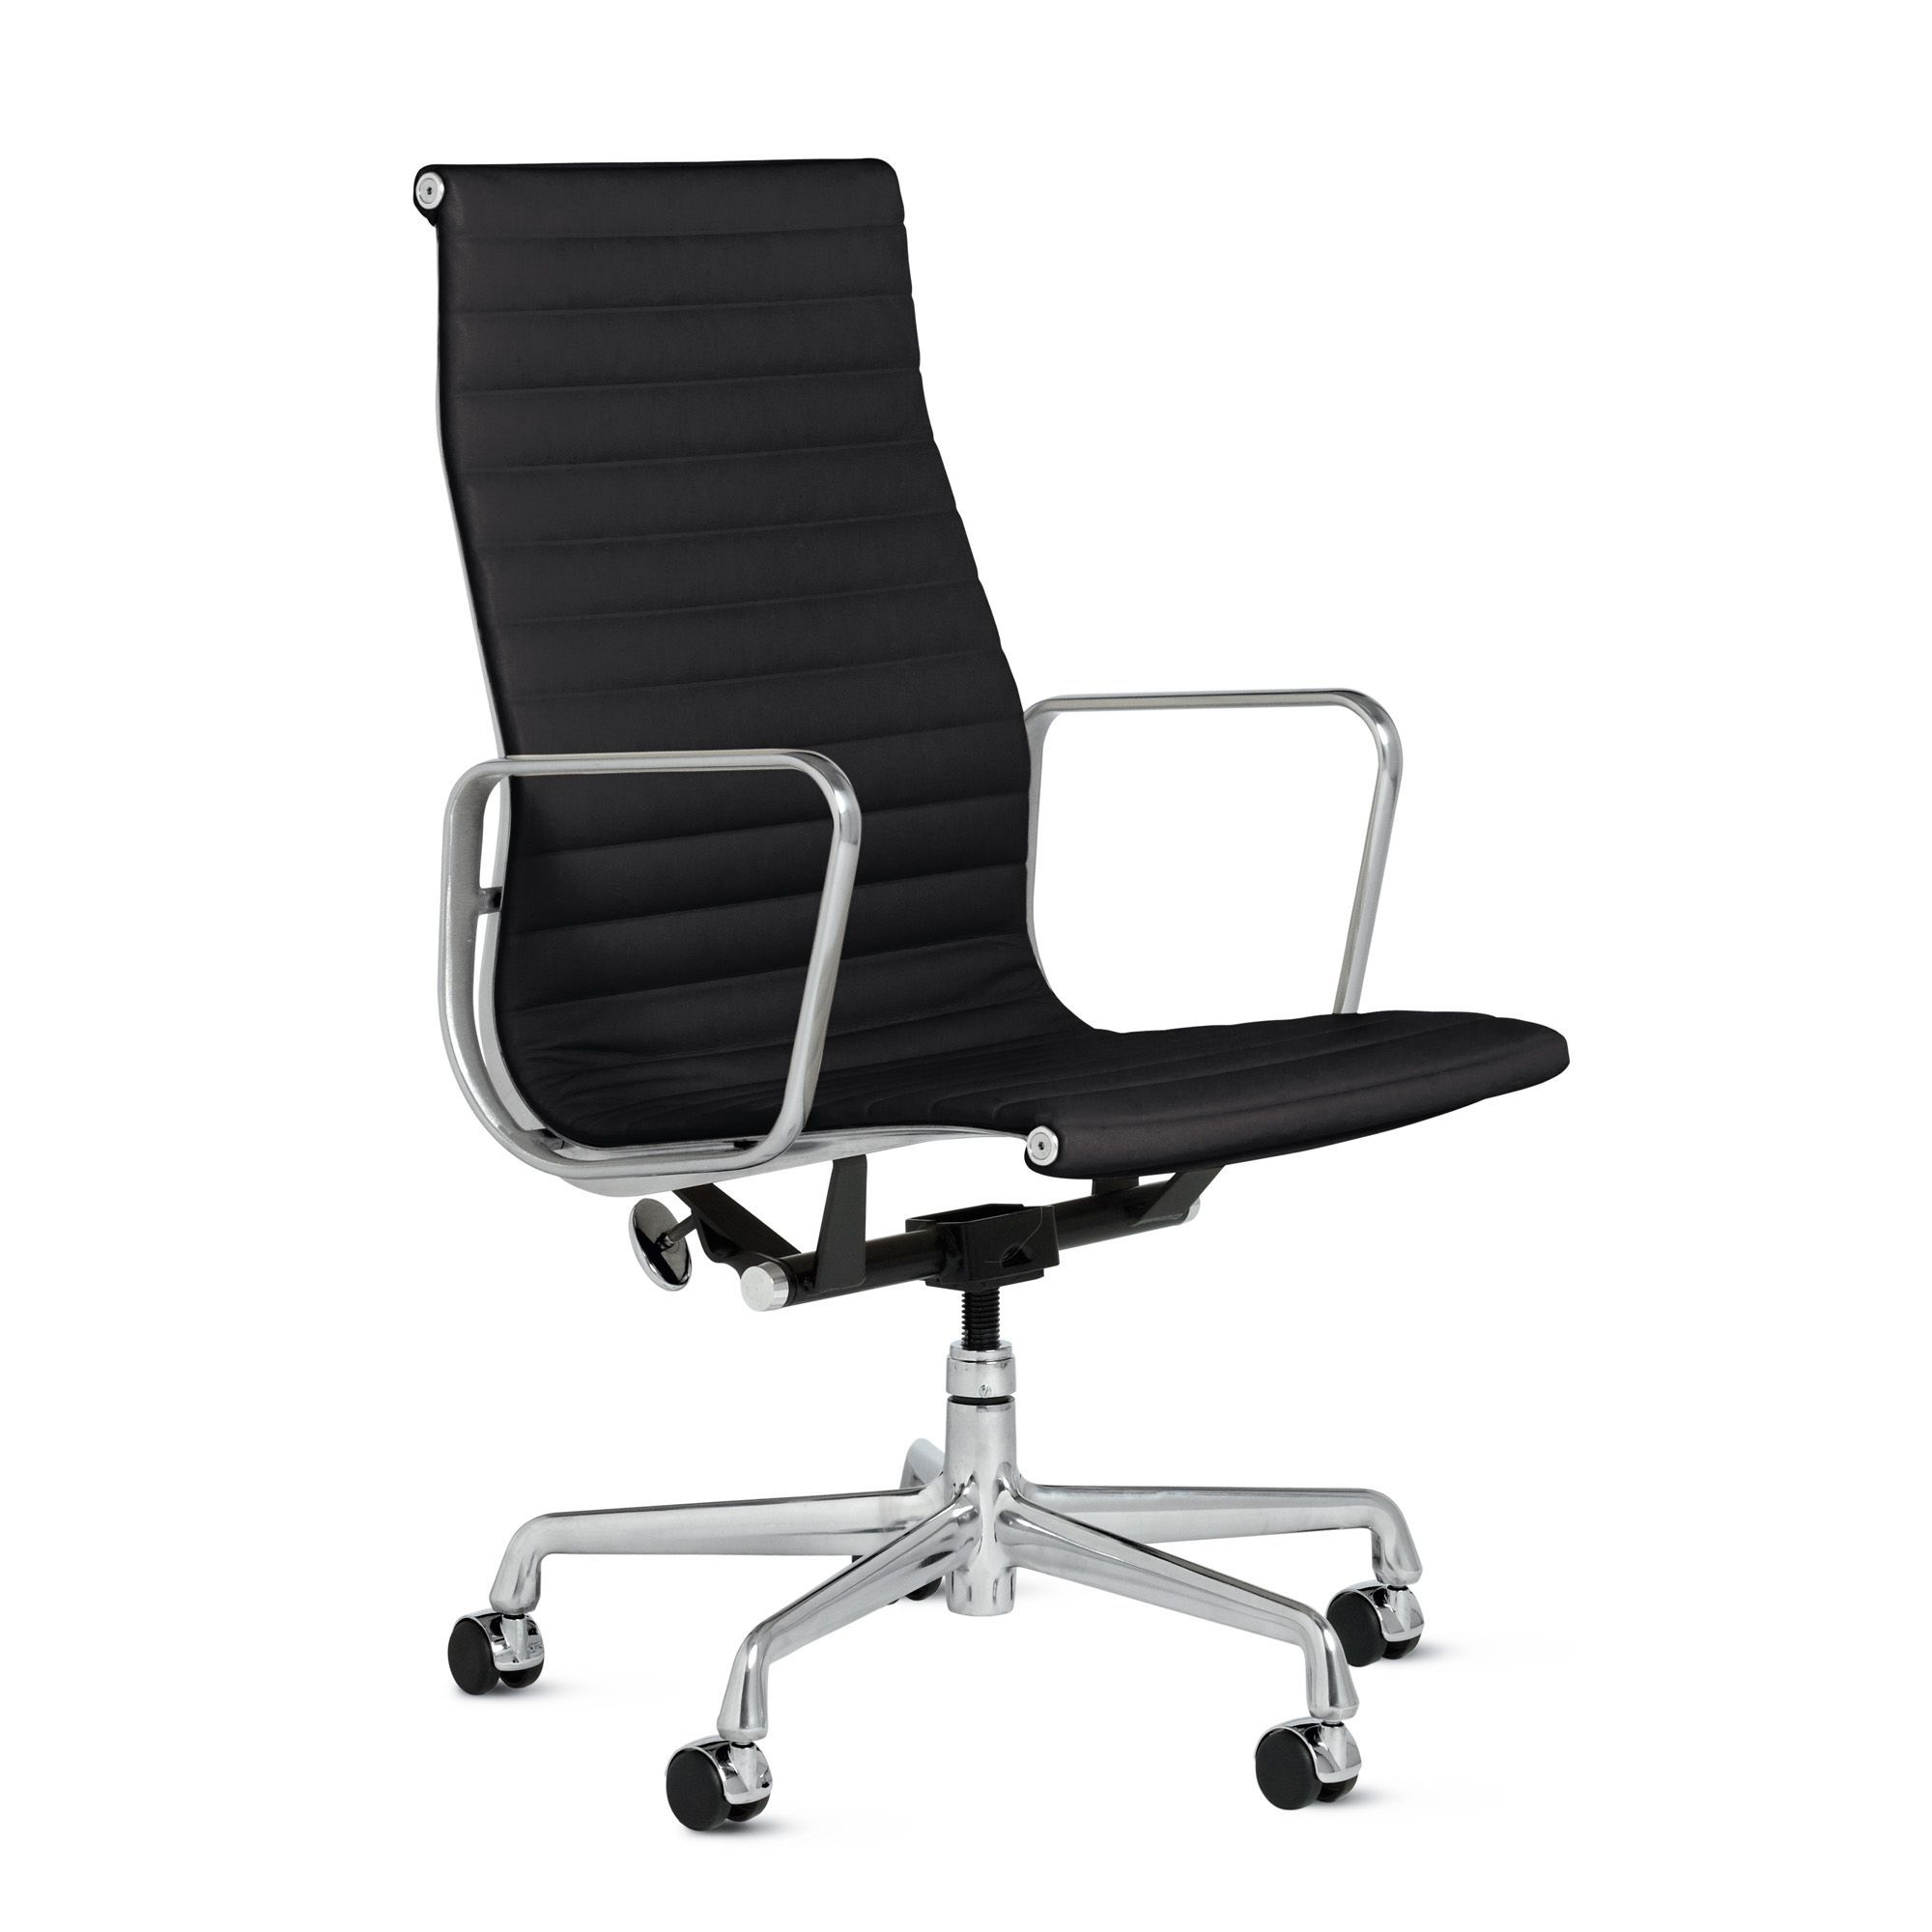 Incroyable Eames® Aluminum Group Executive Chair